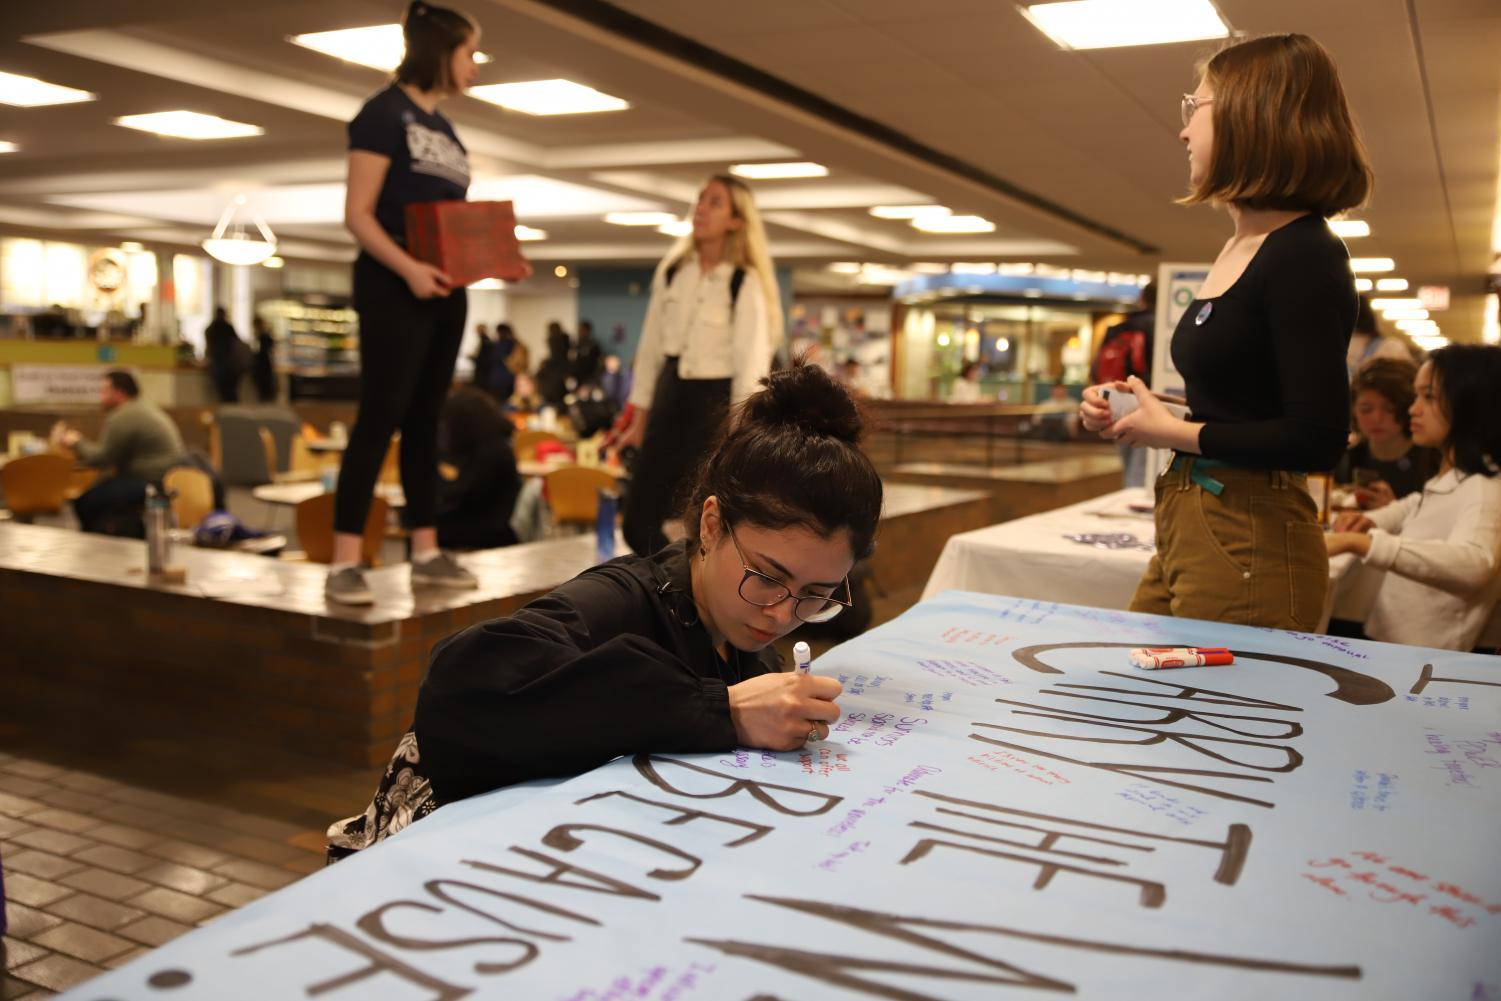 Vanessa Garcia, a freshman secondary education and English major, signs a poster expressing her support for victims of sexual abuse.